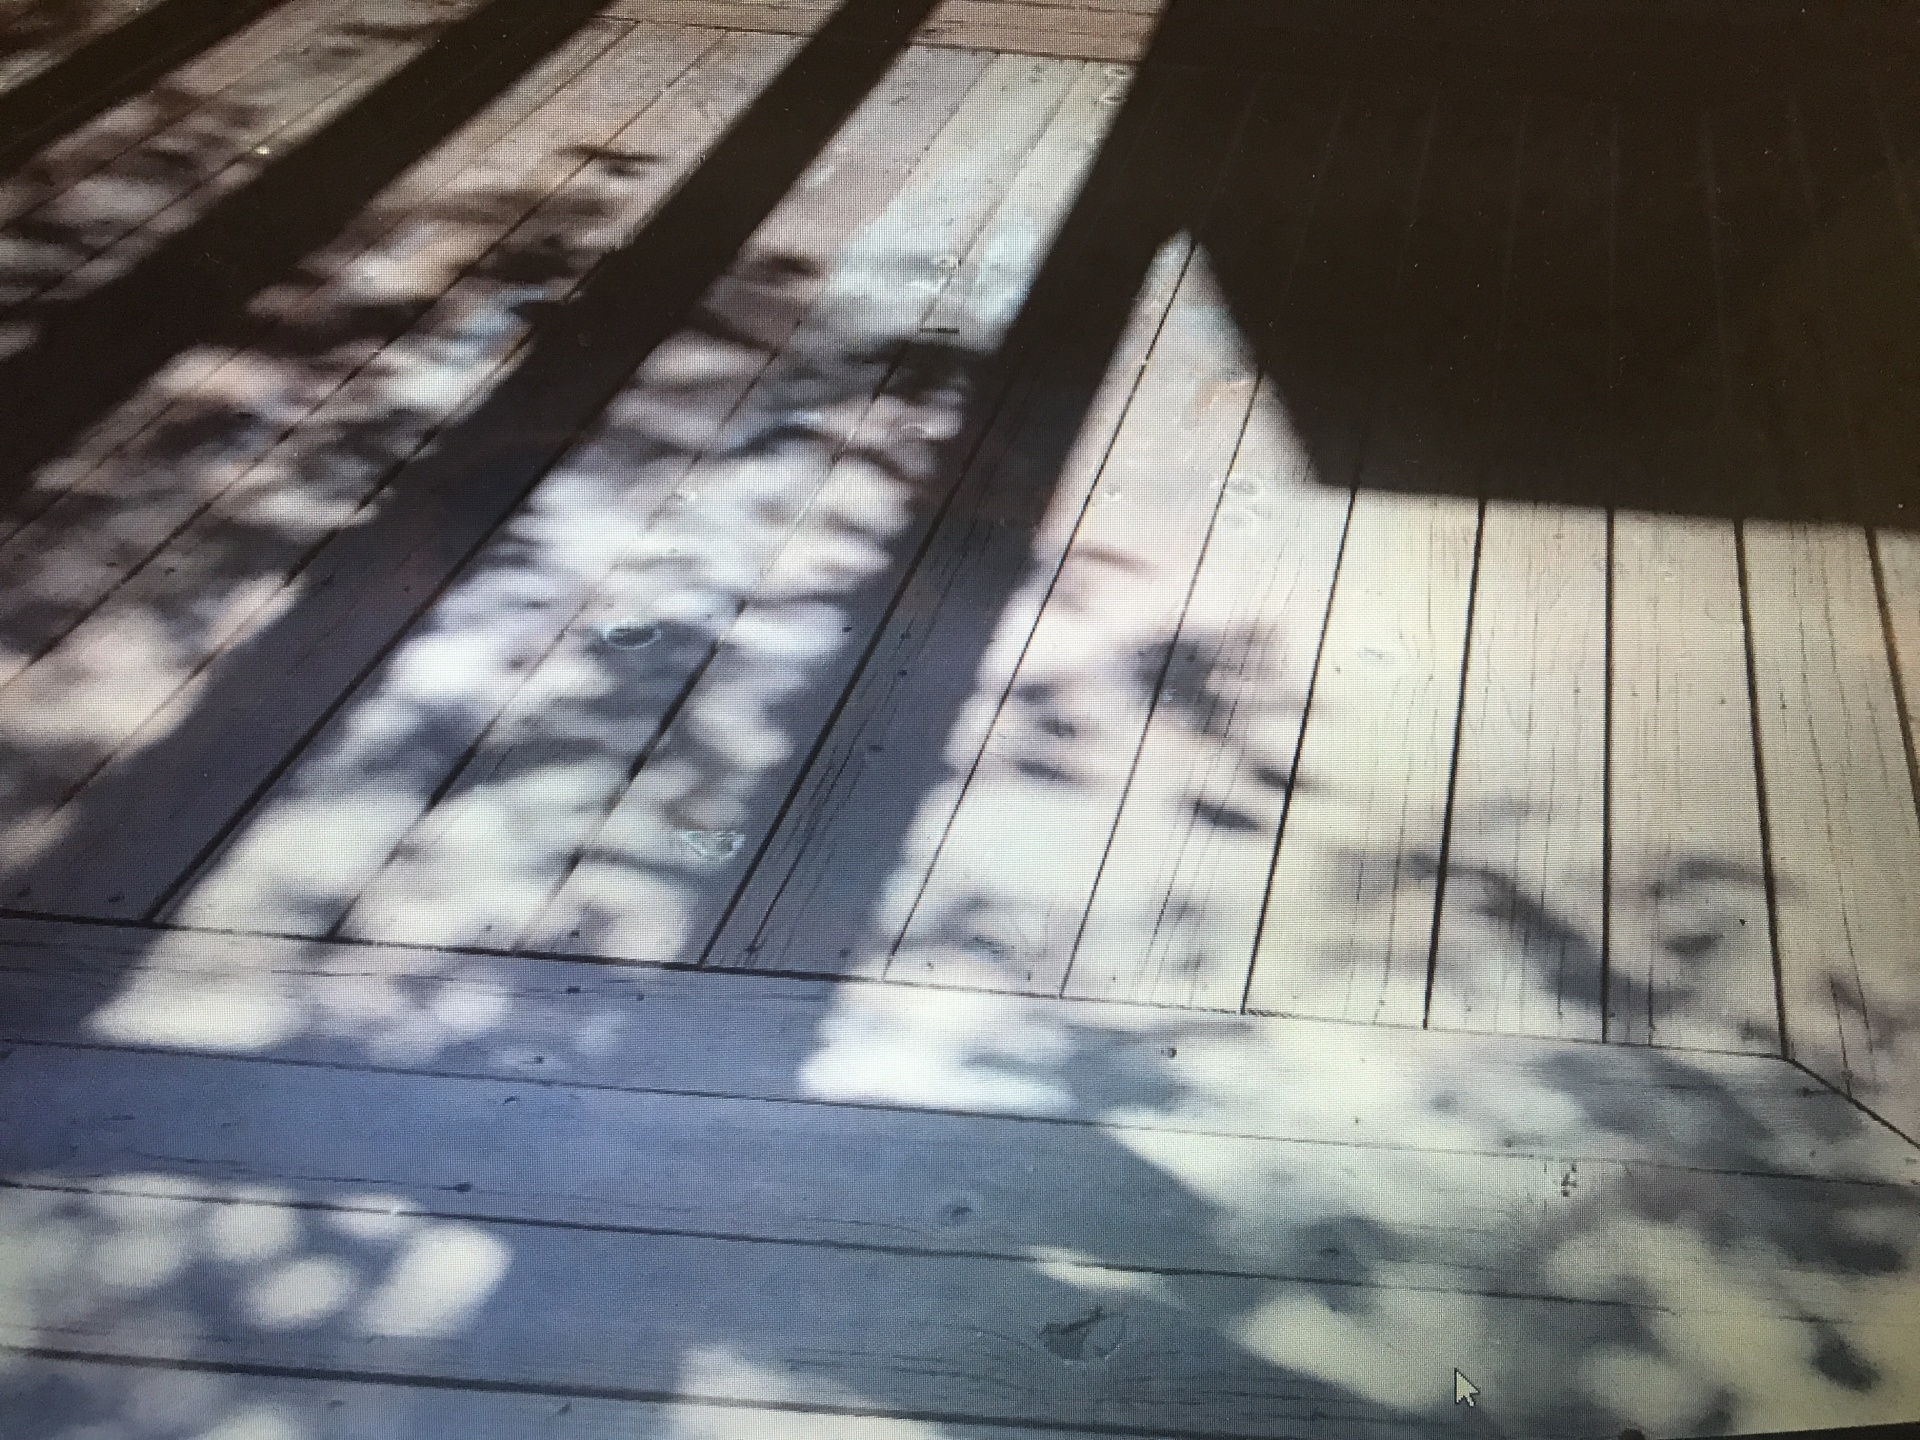 BEFORE (Deck)